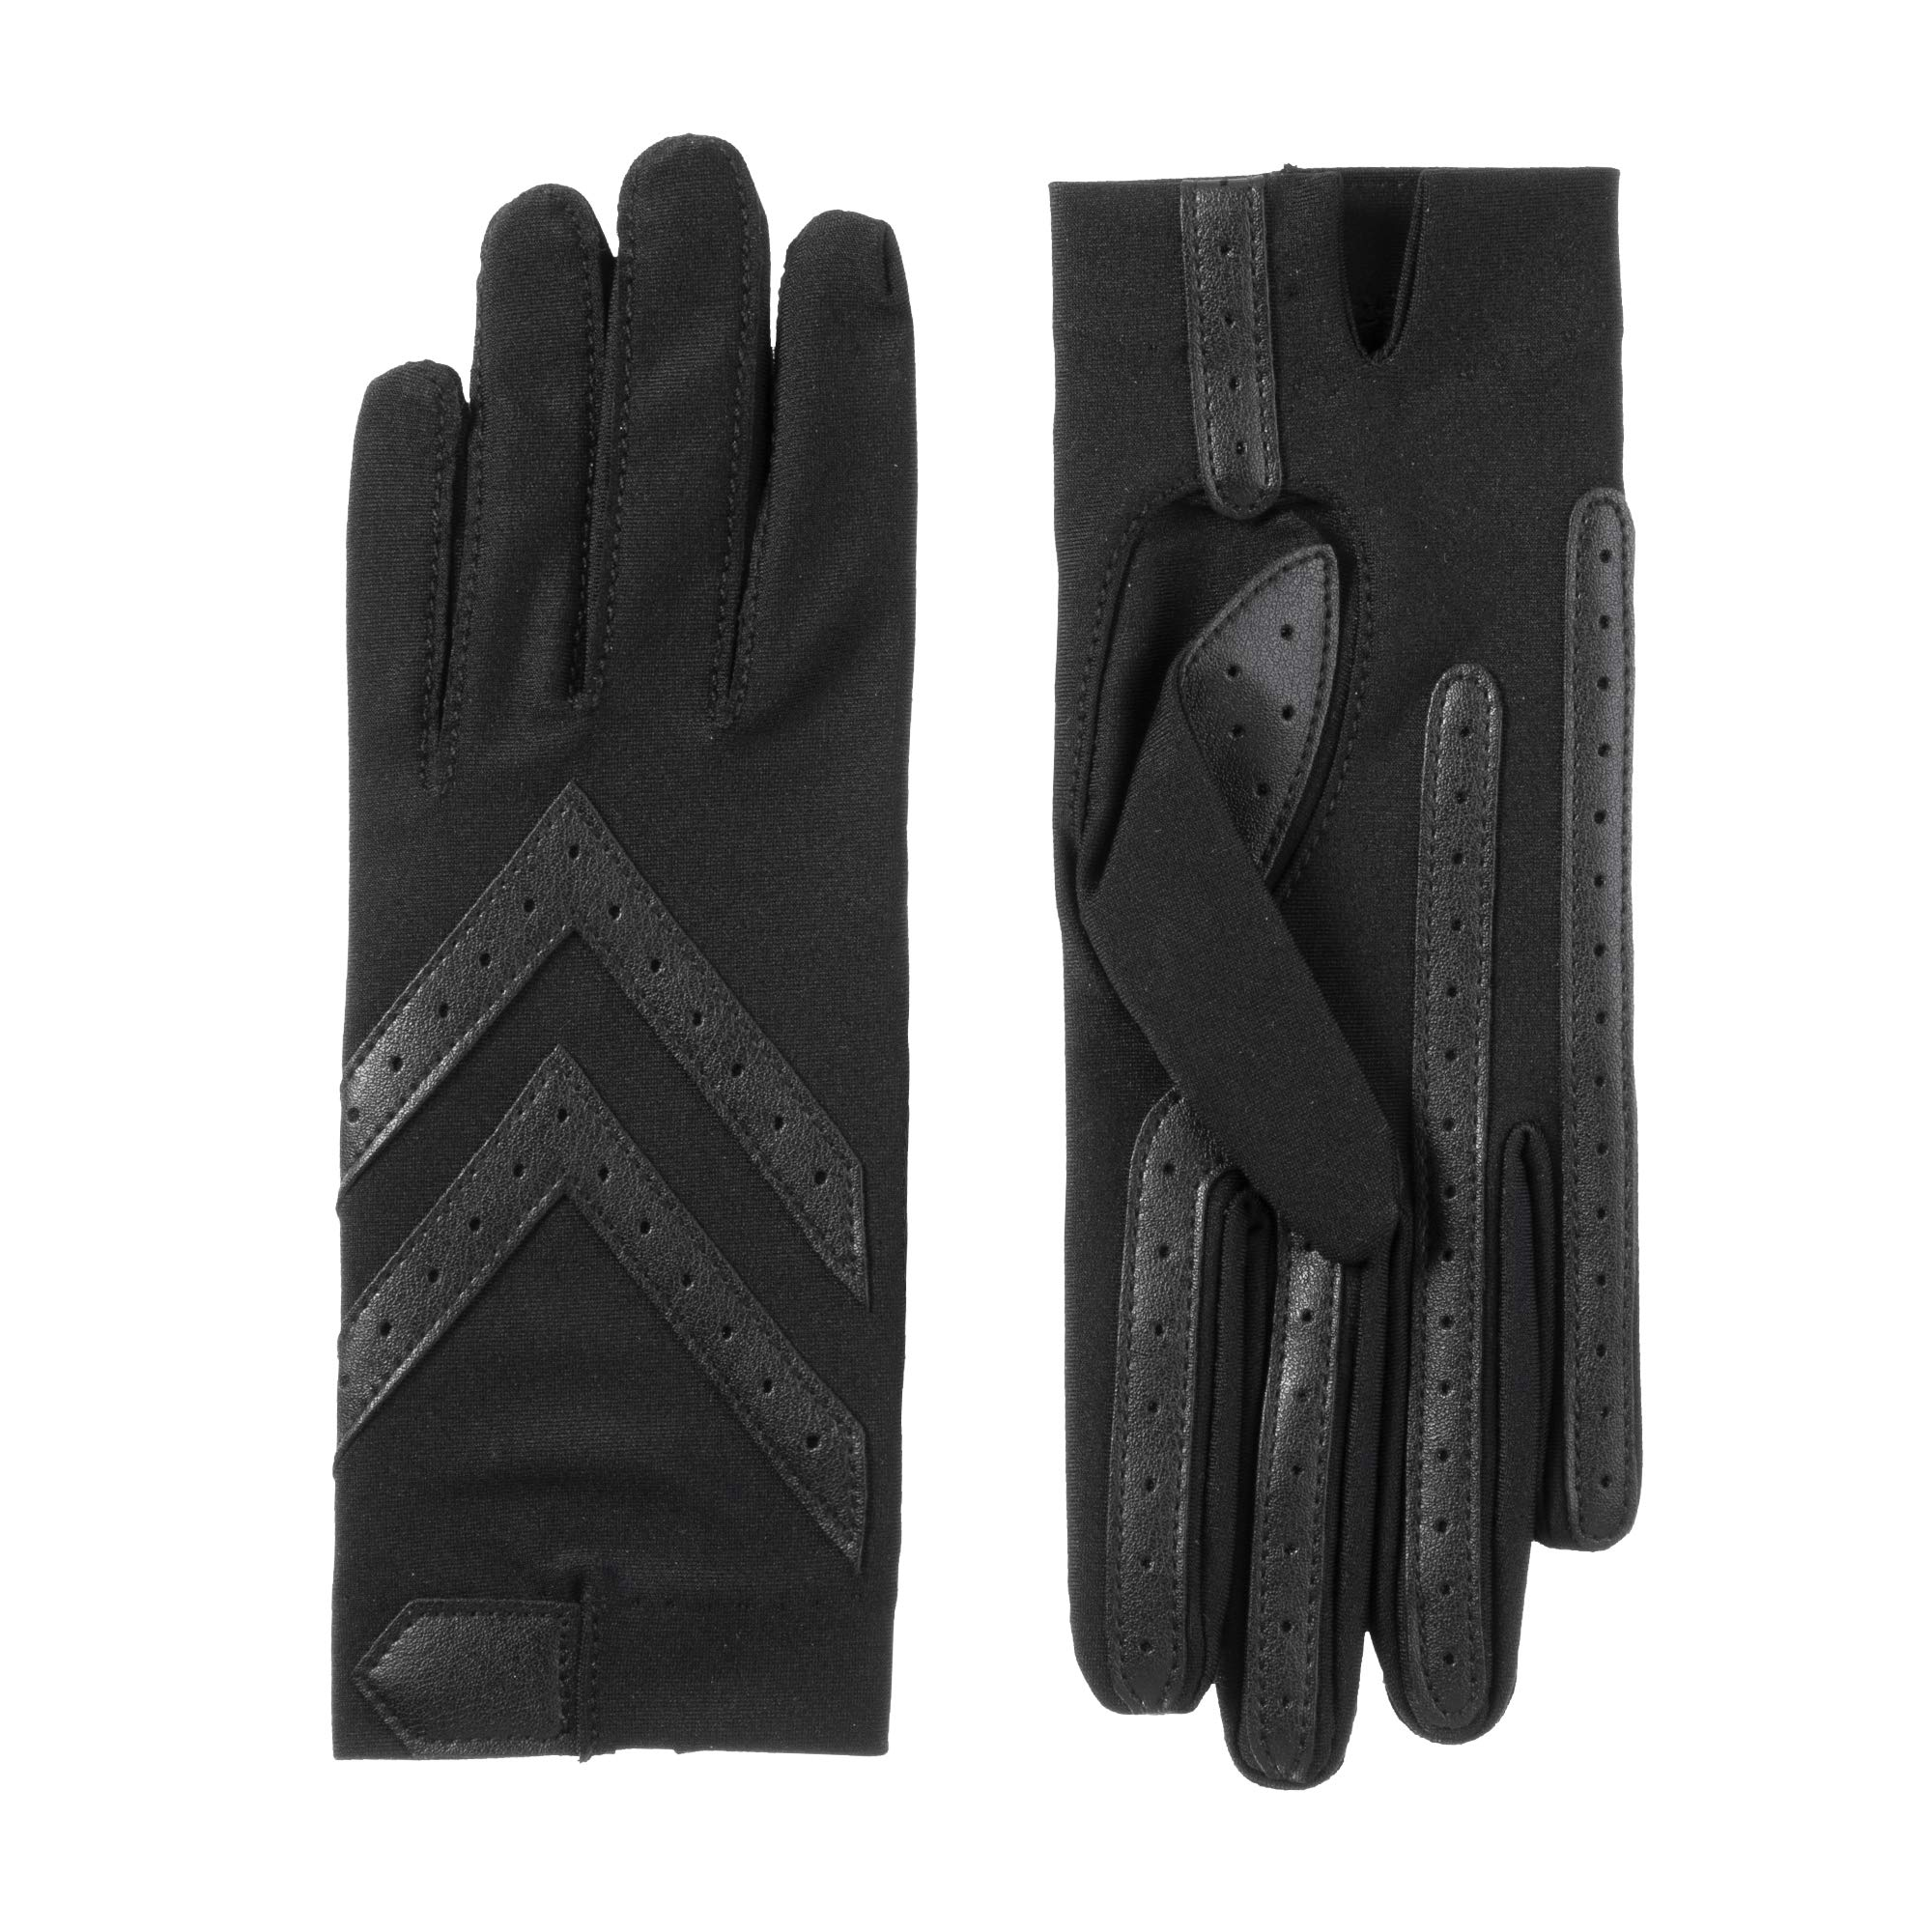 isotoner Women's Spandex Stretch Shortie Cold Weather Gloves with Leather Palms and Chevron Details, smartDRI Black, Large/X-Large by isotoner